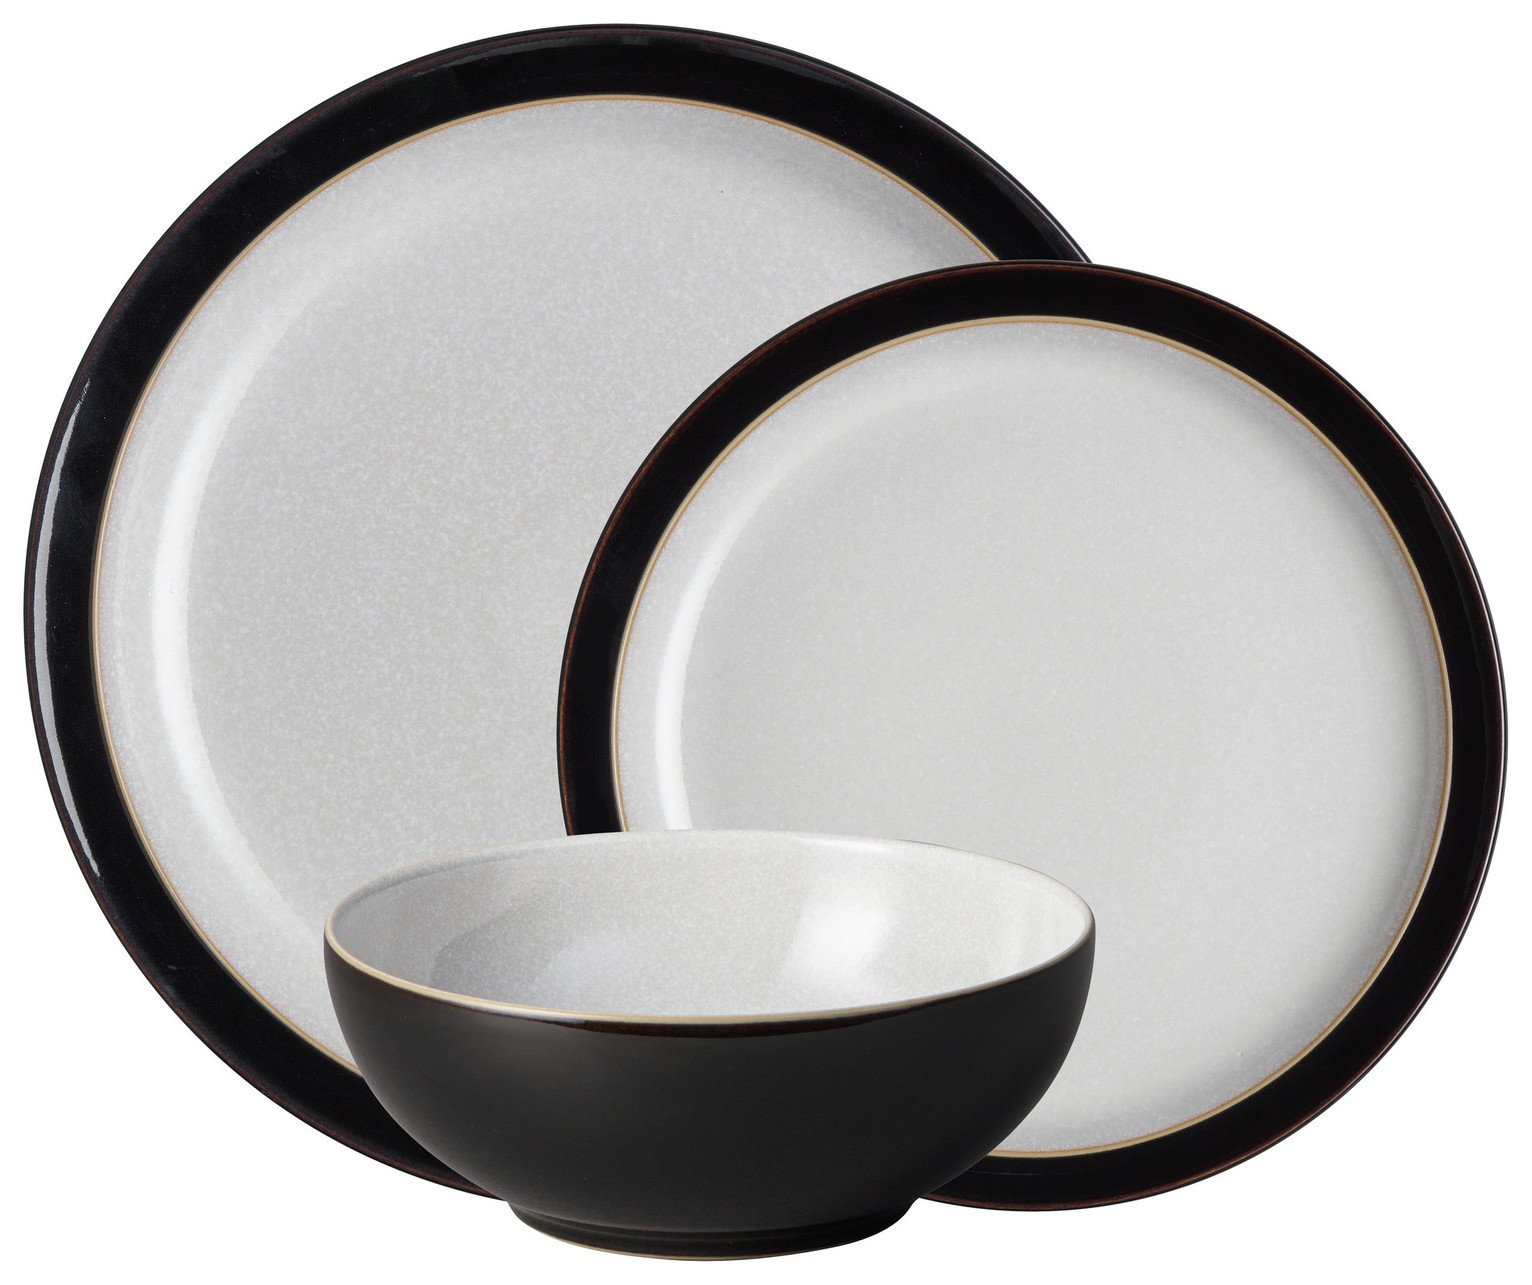 Image of Denby Elements 12 Piece Dinner Set - Black